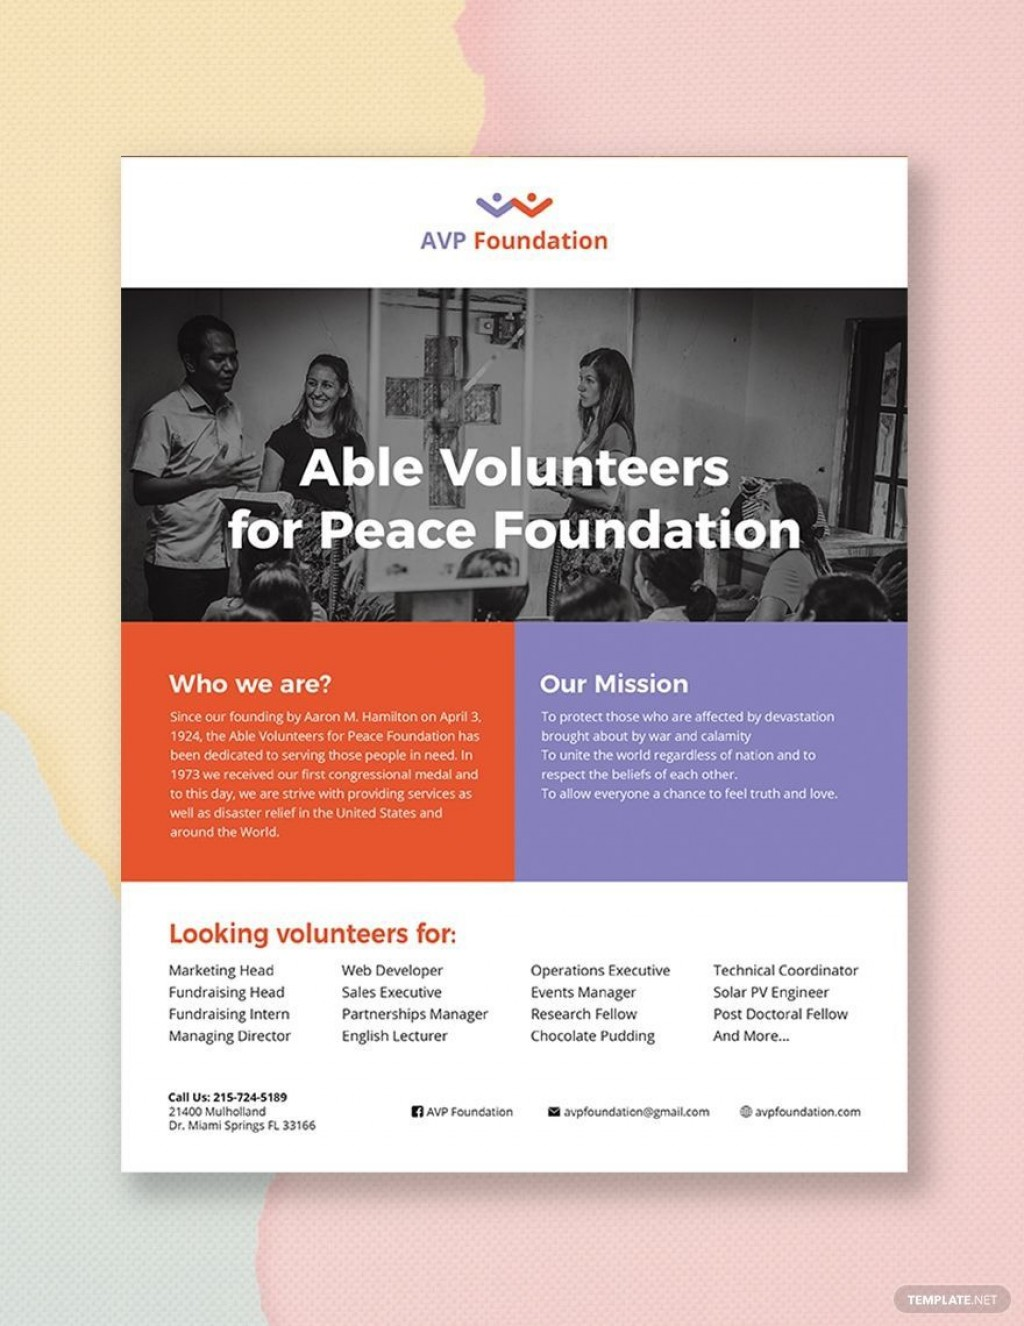 005 Excellent Microsoft Publisher Flyer Template High Def  Office Free Event DownloadLarge